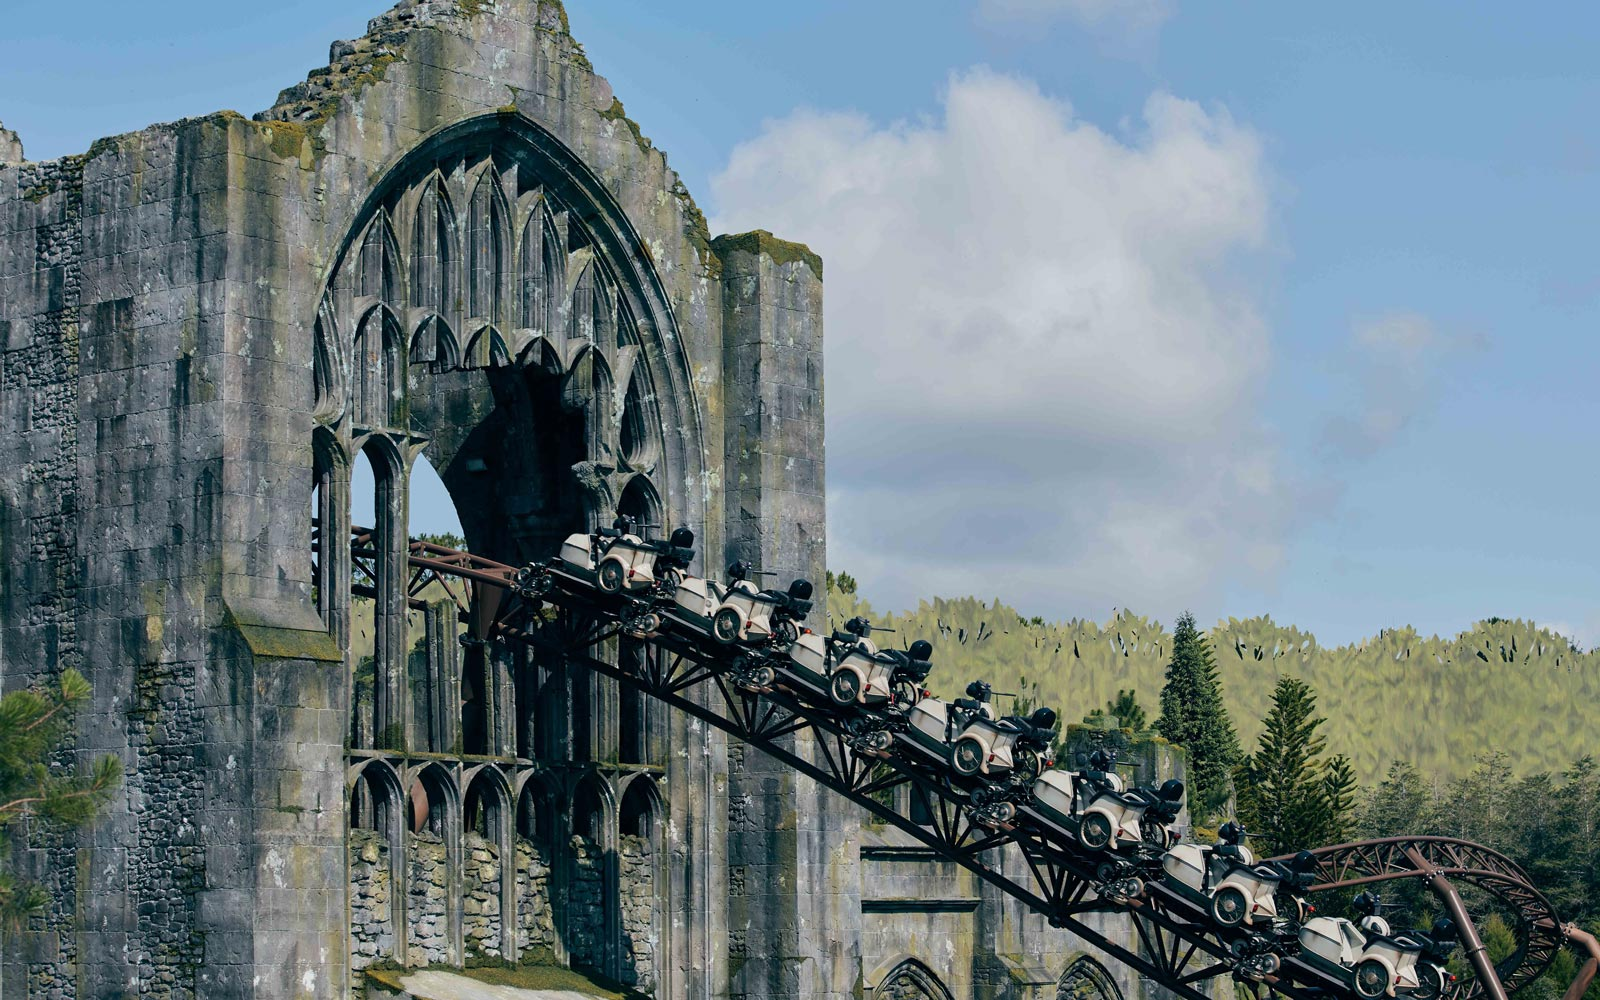 This Video Will Show You What It'll Be Like to Ride on Hagrid's Magical Creatures Motorbike Adventure